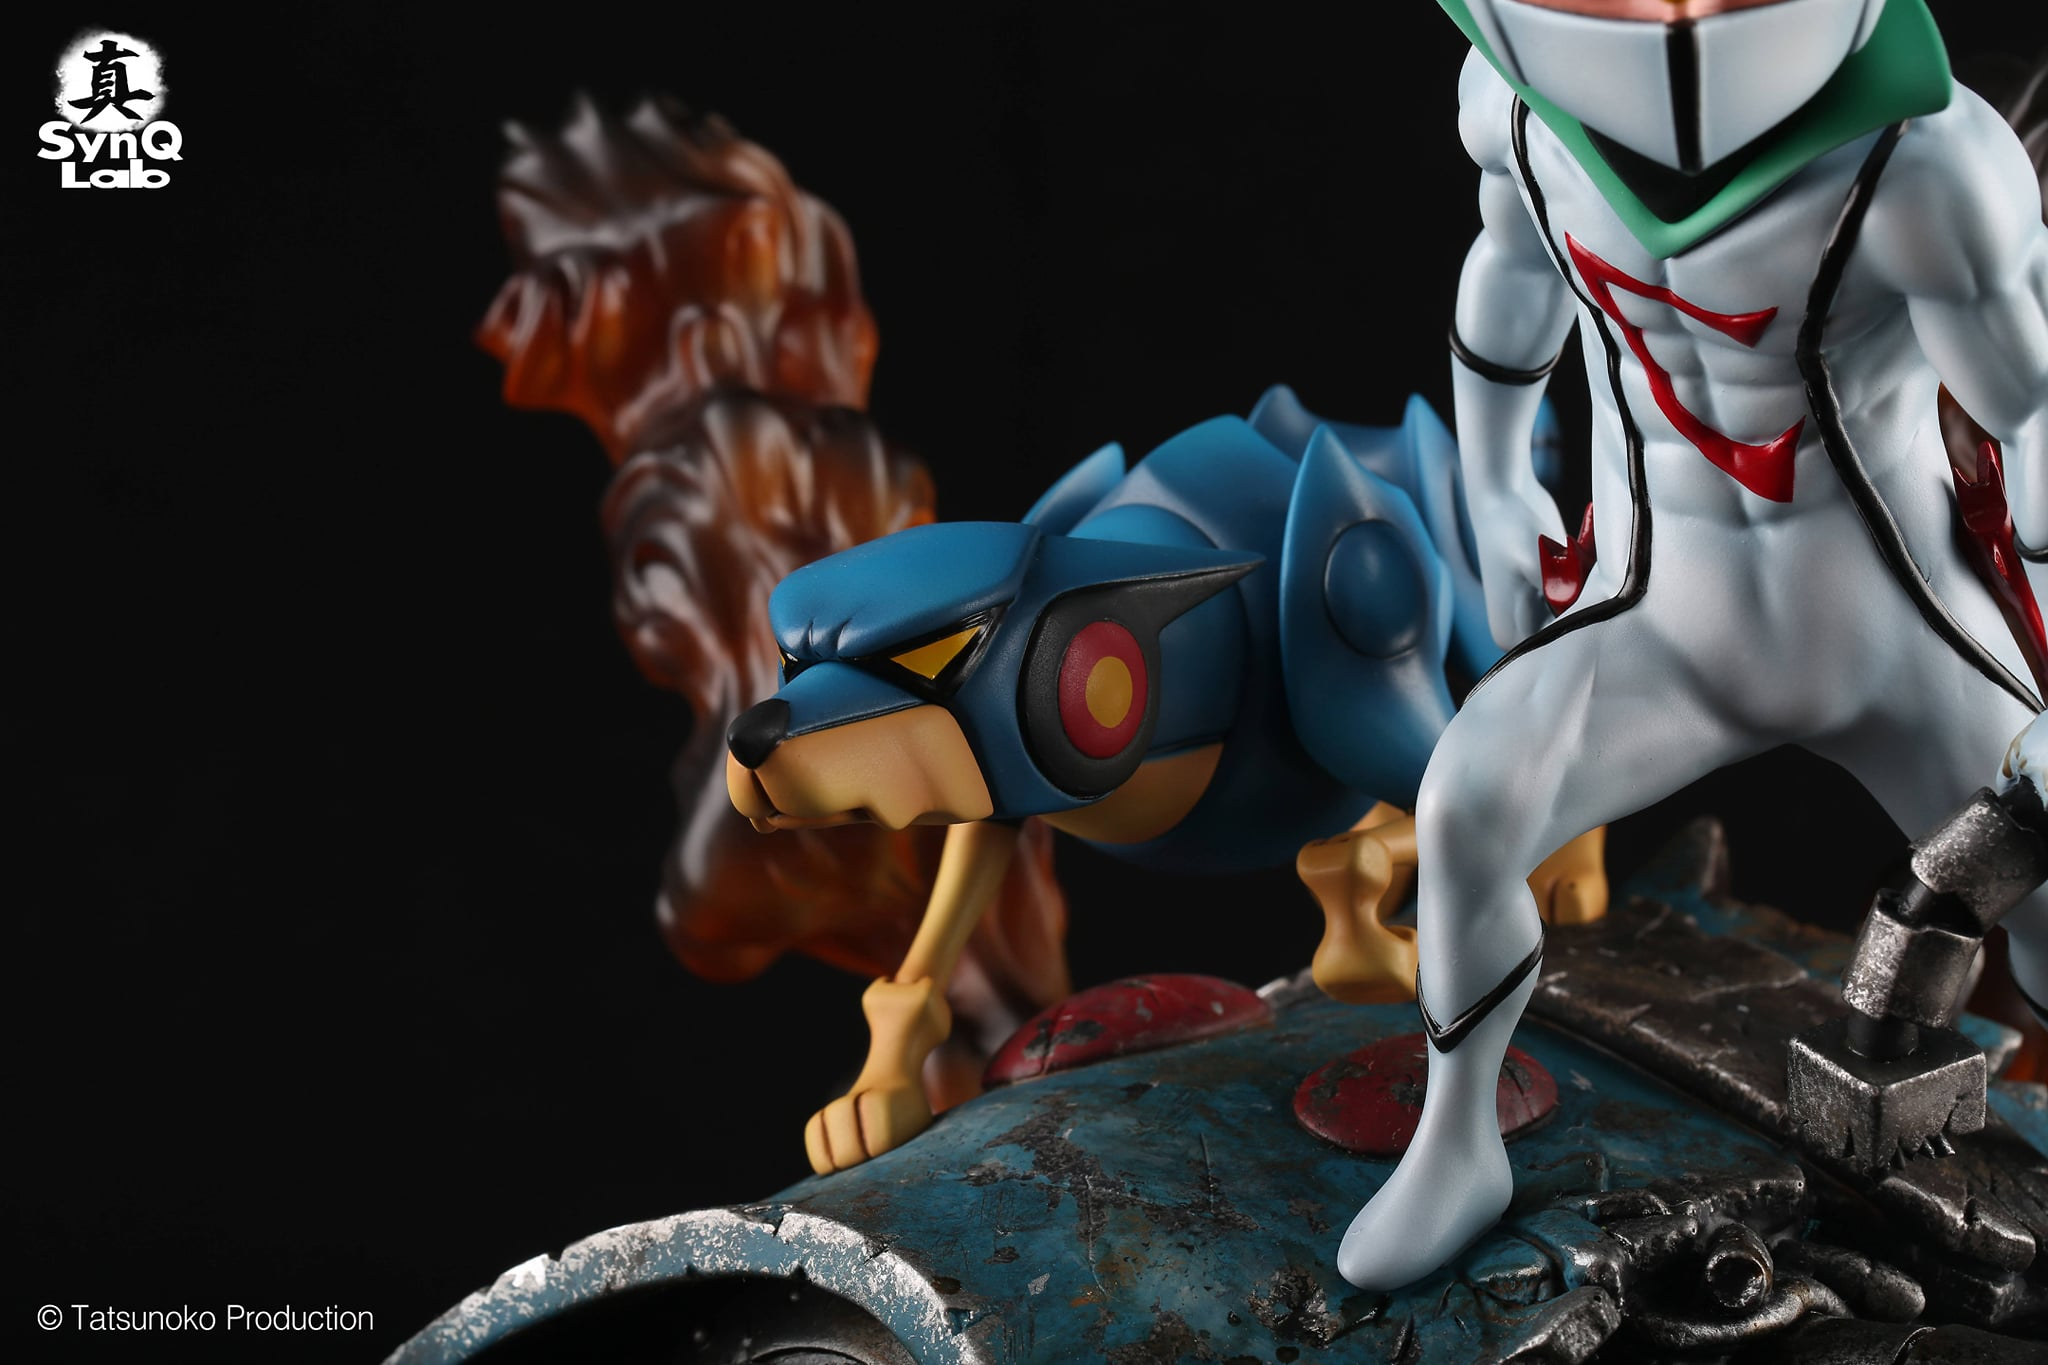 Link a Kyashan_SD Collectible Statue_SynQ-Lab- (11)